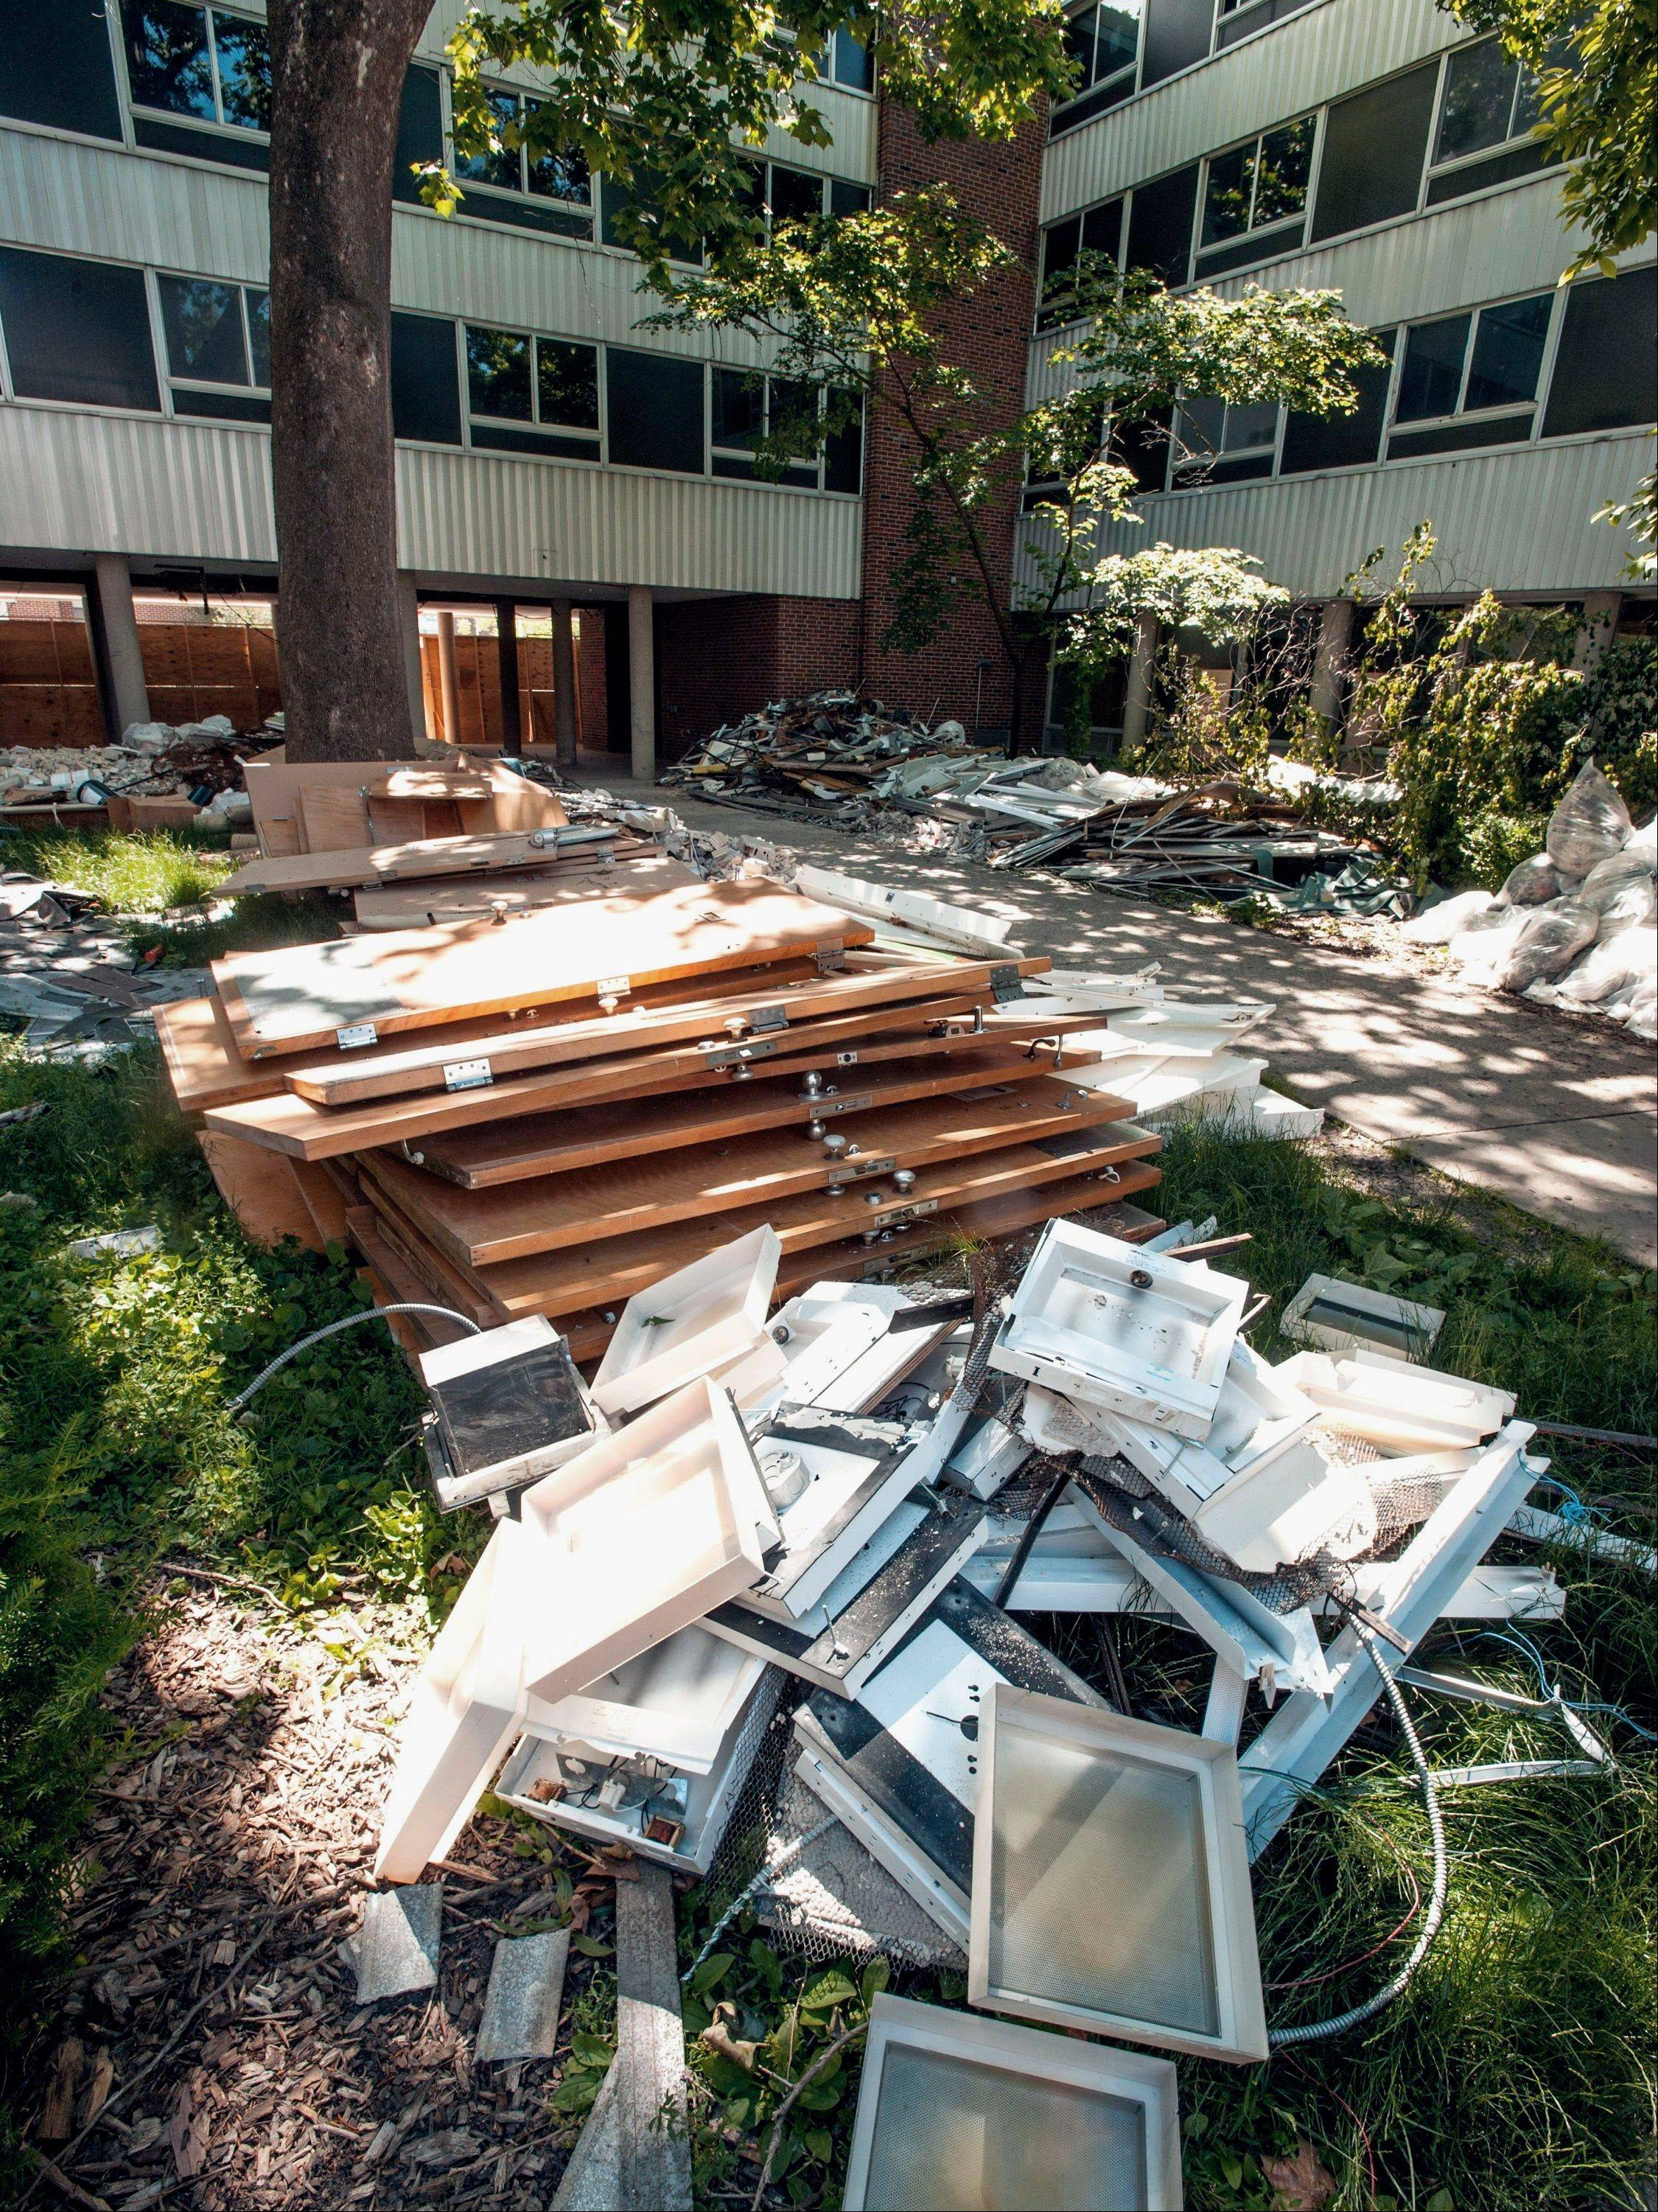 Material is separated into piles of metal and wood last month during the ongoing demolition of Forbes Hall on the University of Illinois campus in Champaign, Ill.